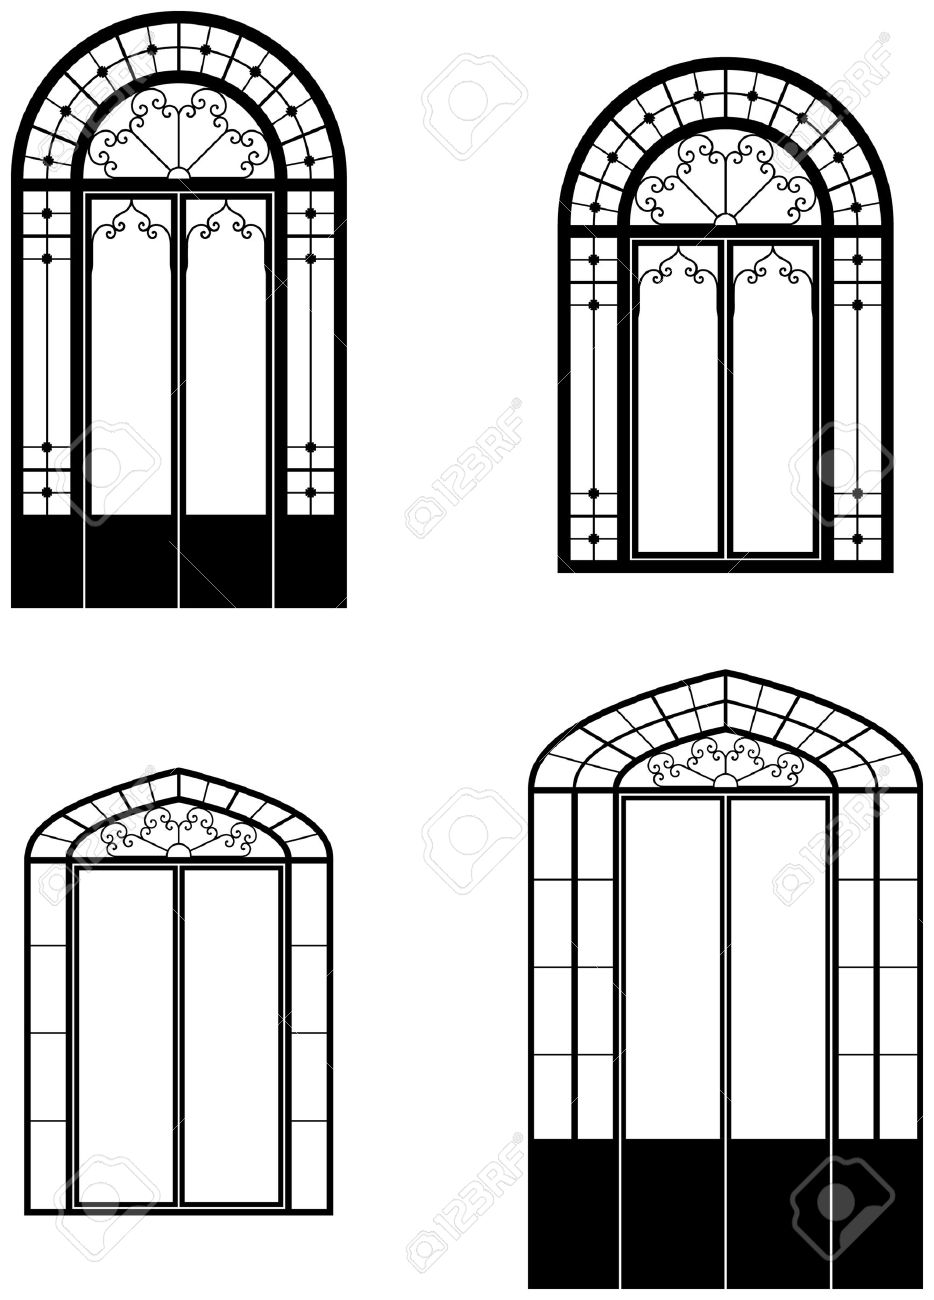 Arched door clipart clipground for Window design clipart